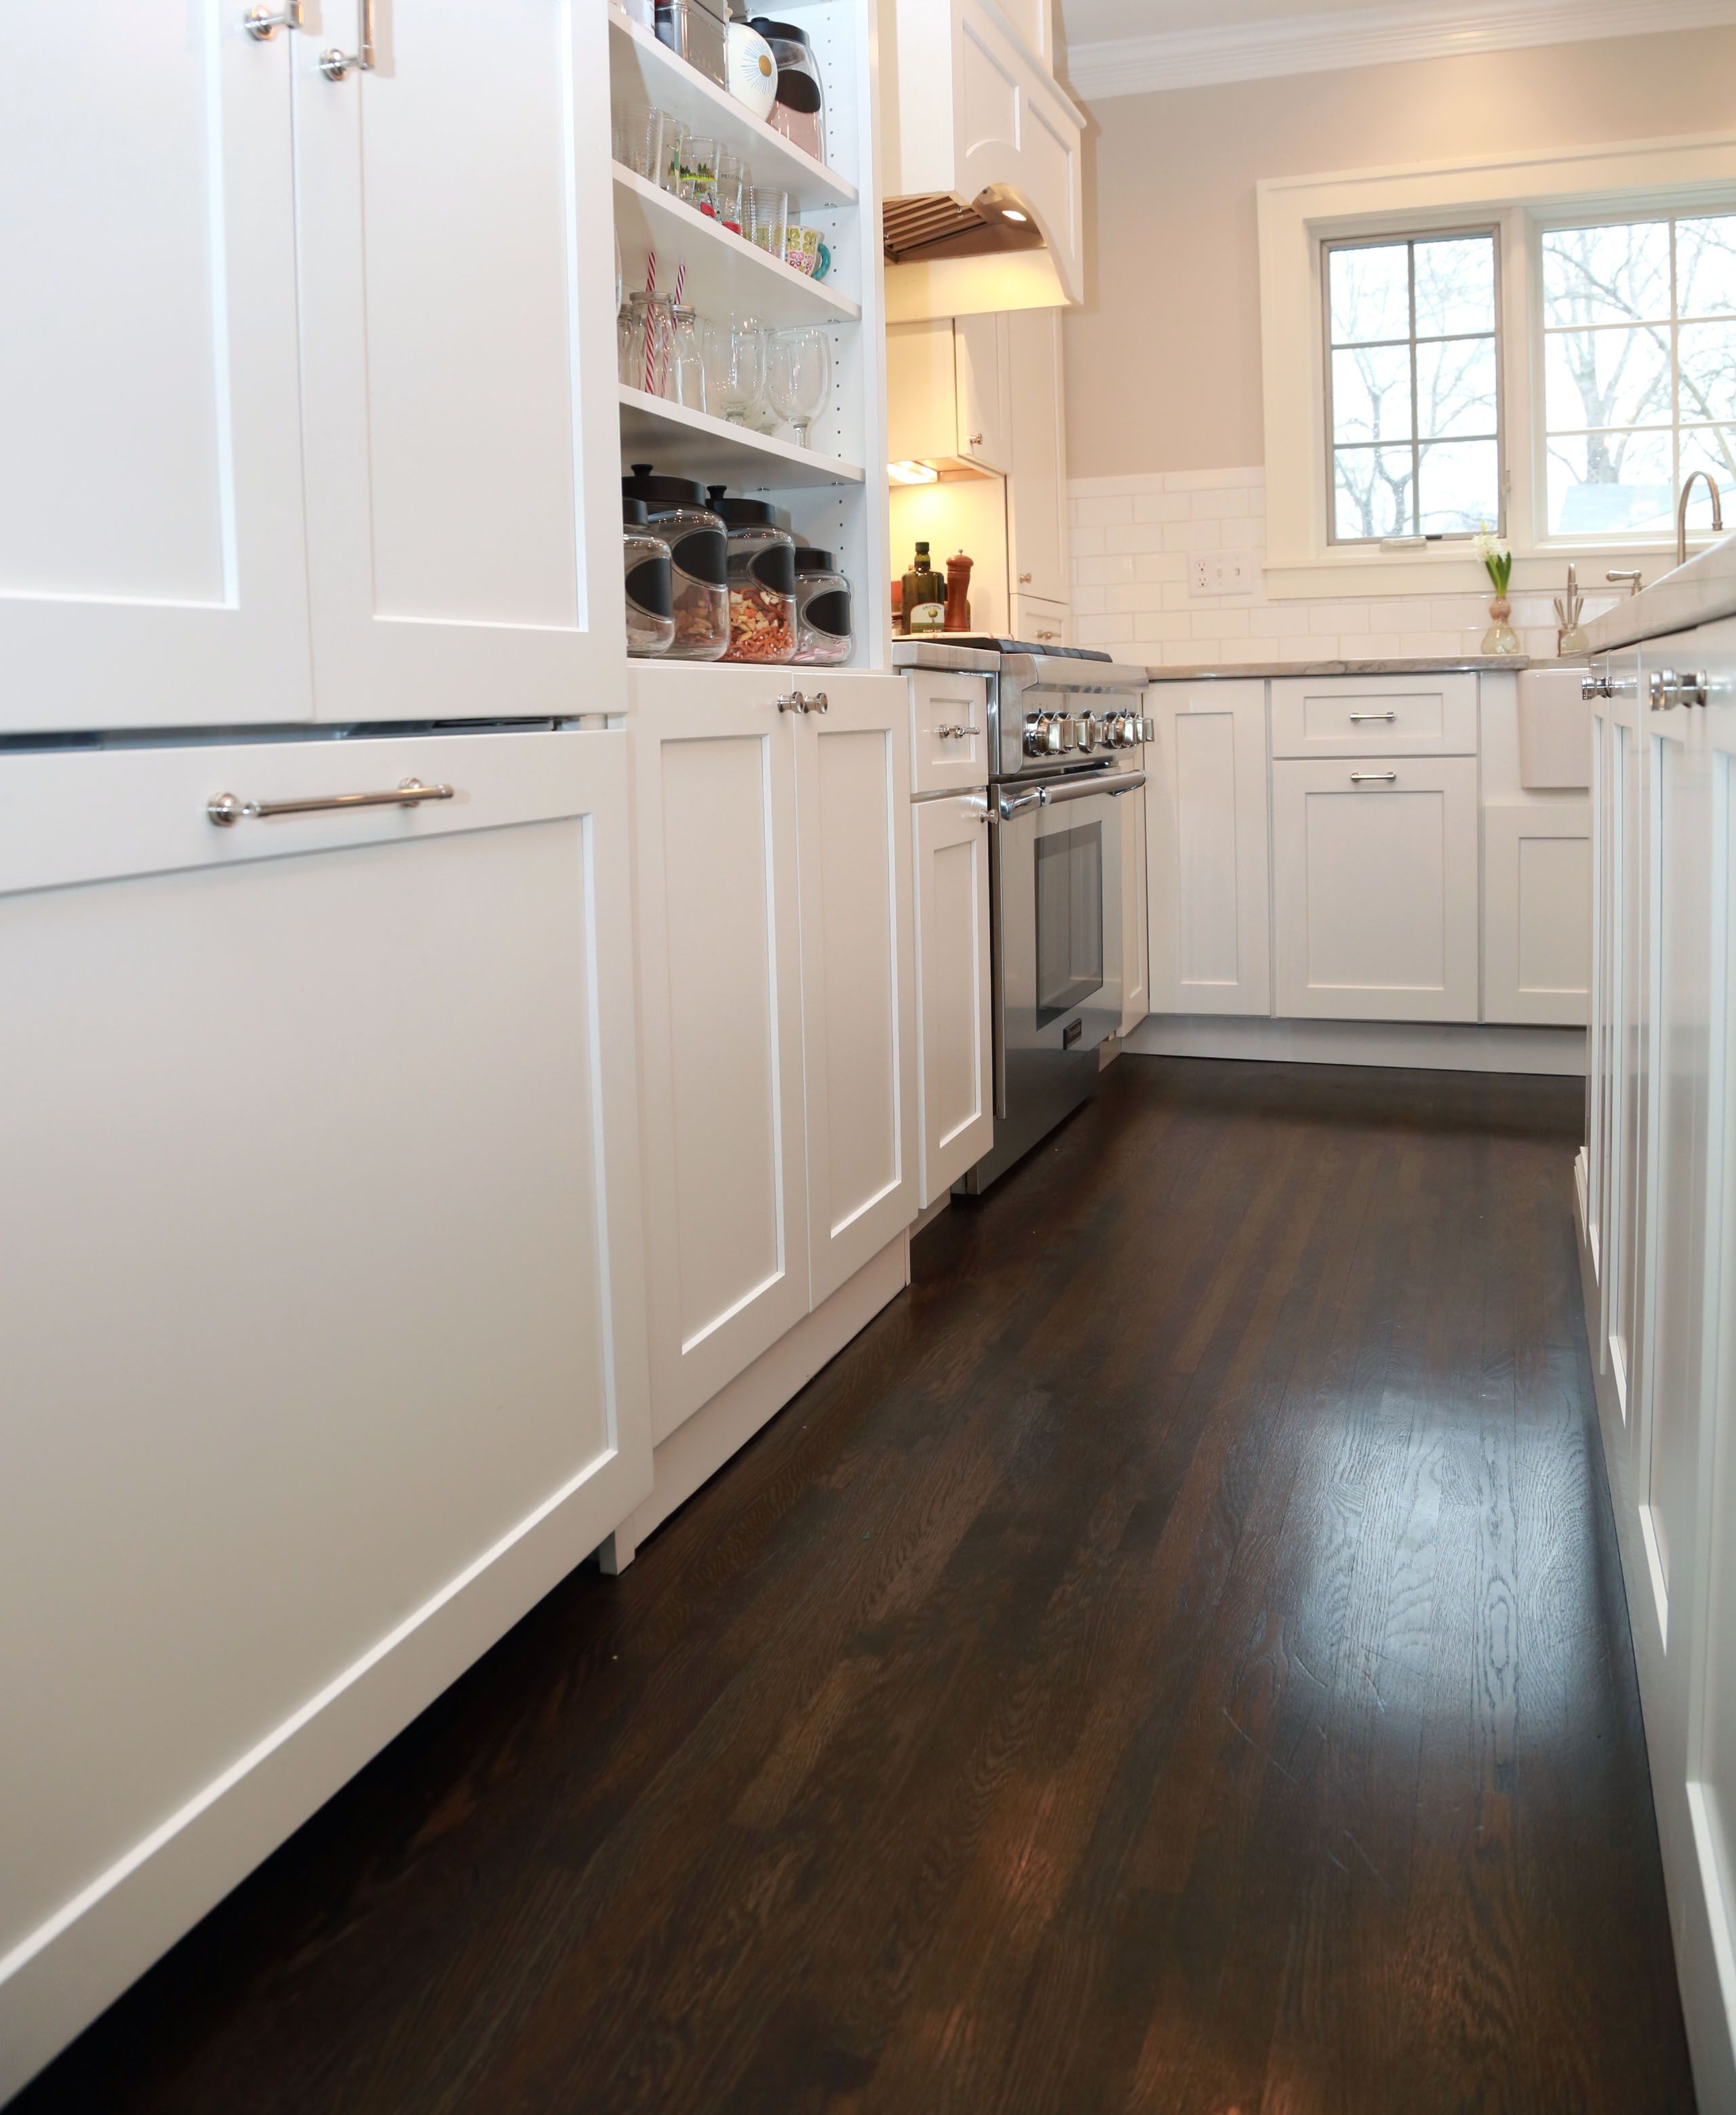 kitchen features full overlay cabinetry with chelsea door style manor flat drawer front in designer white r0 front